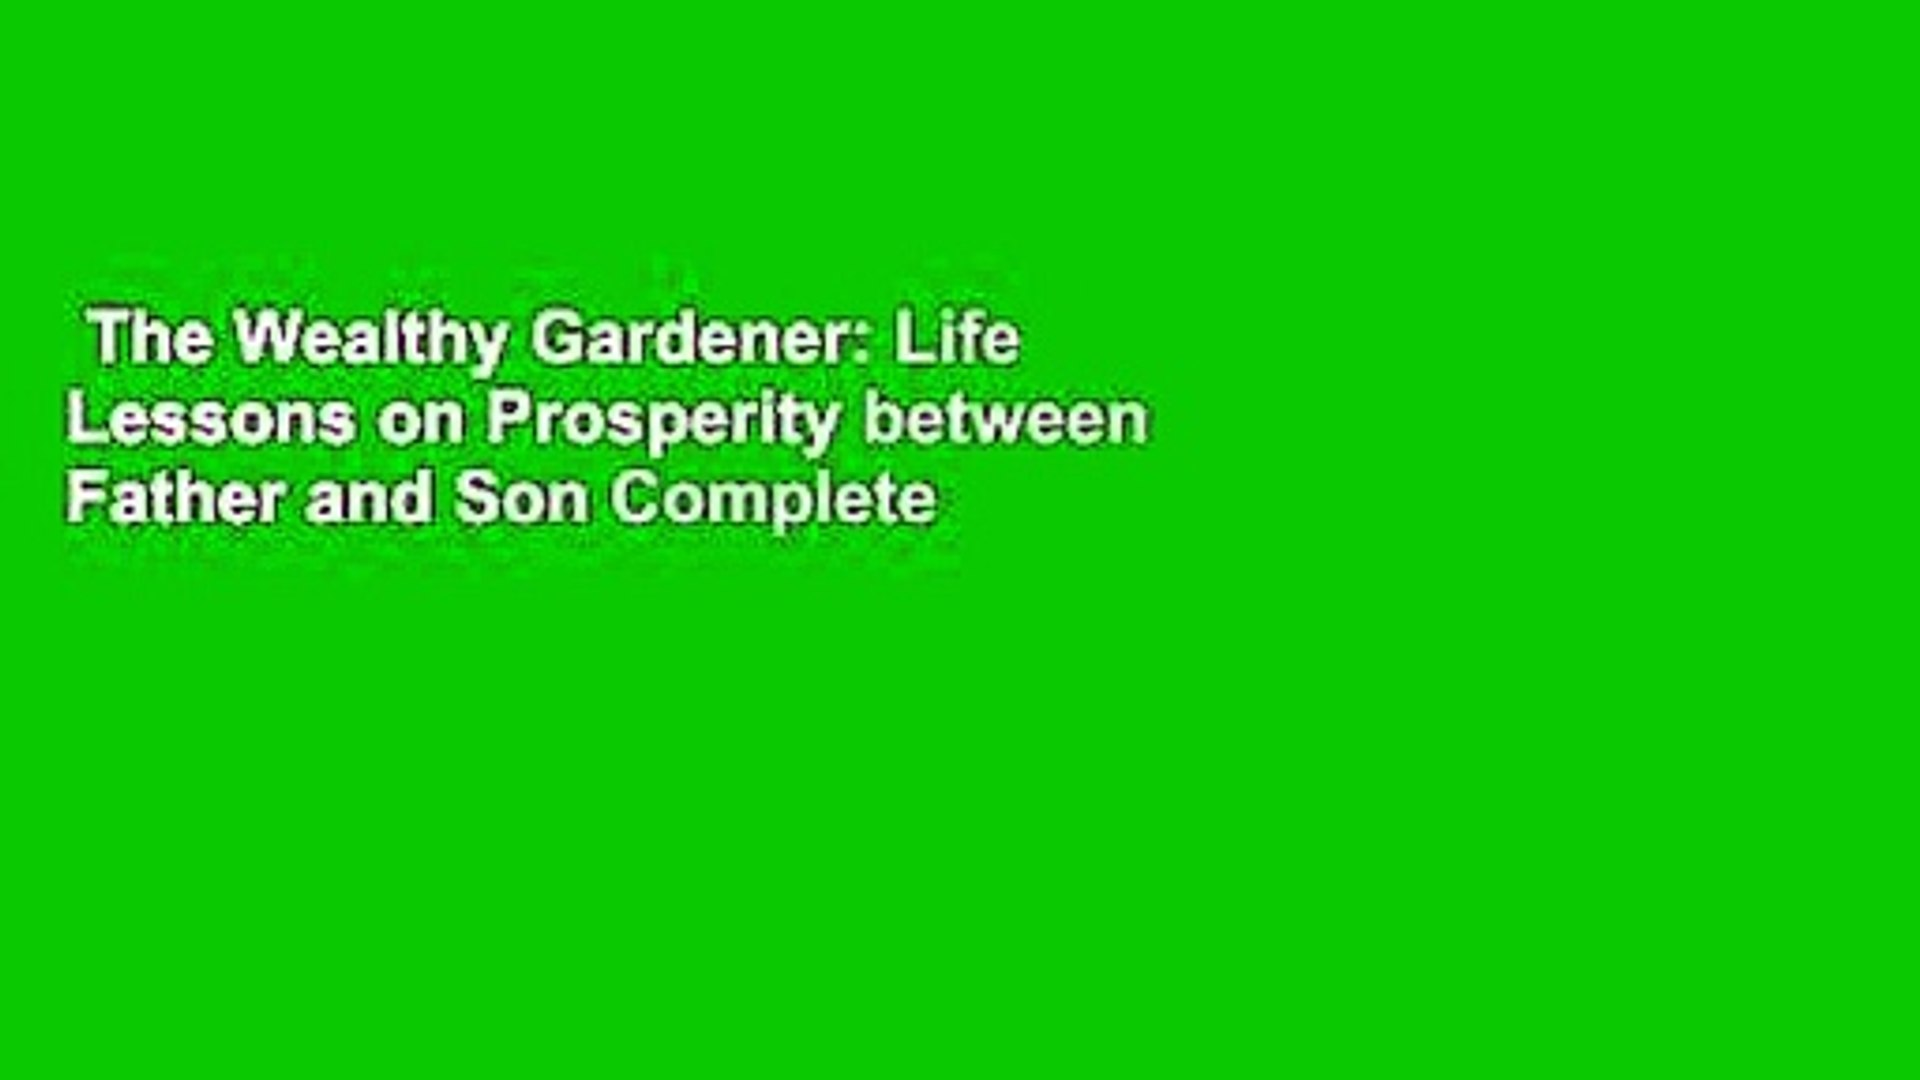 The Wealthy Gardener Life Lessons on Prosperity Between Father and Son